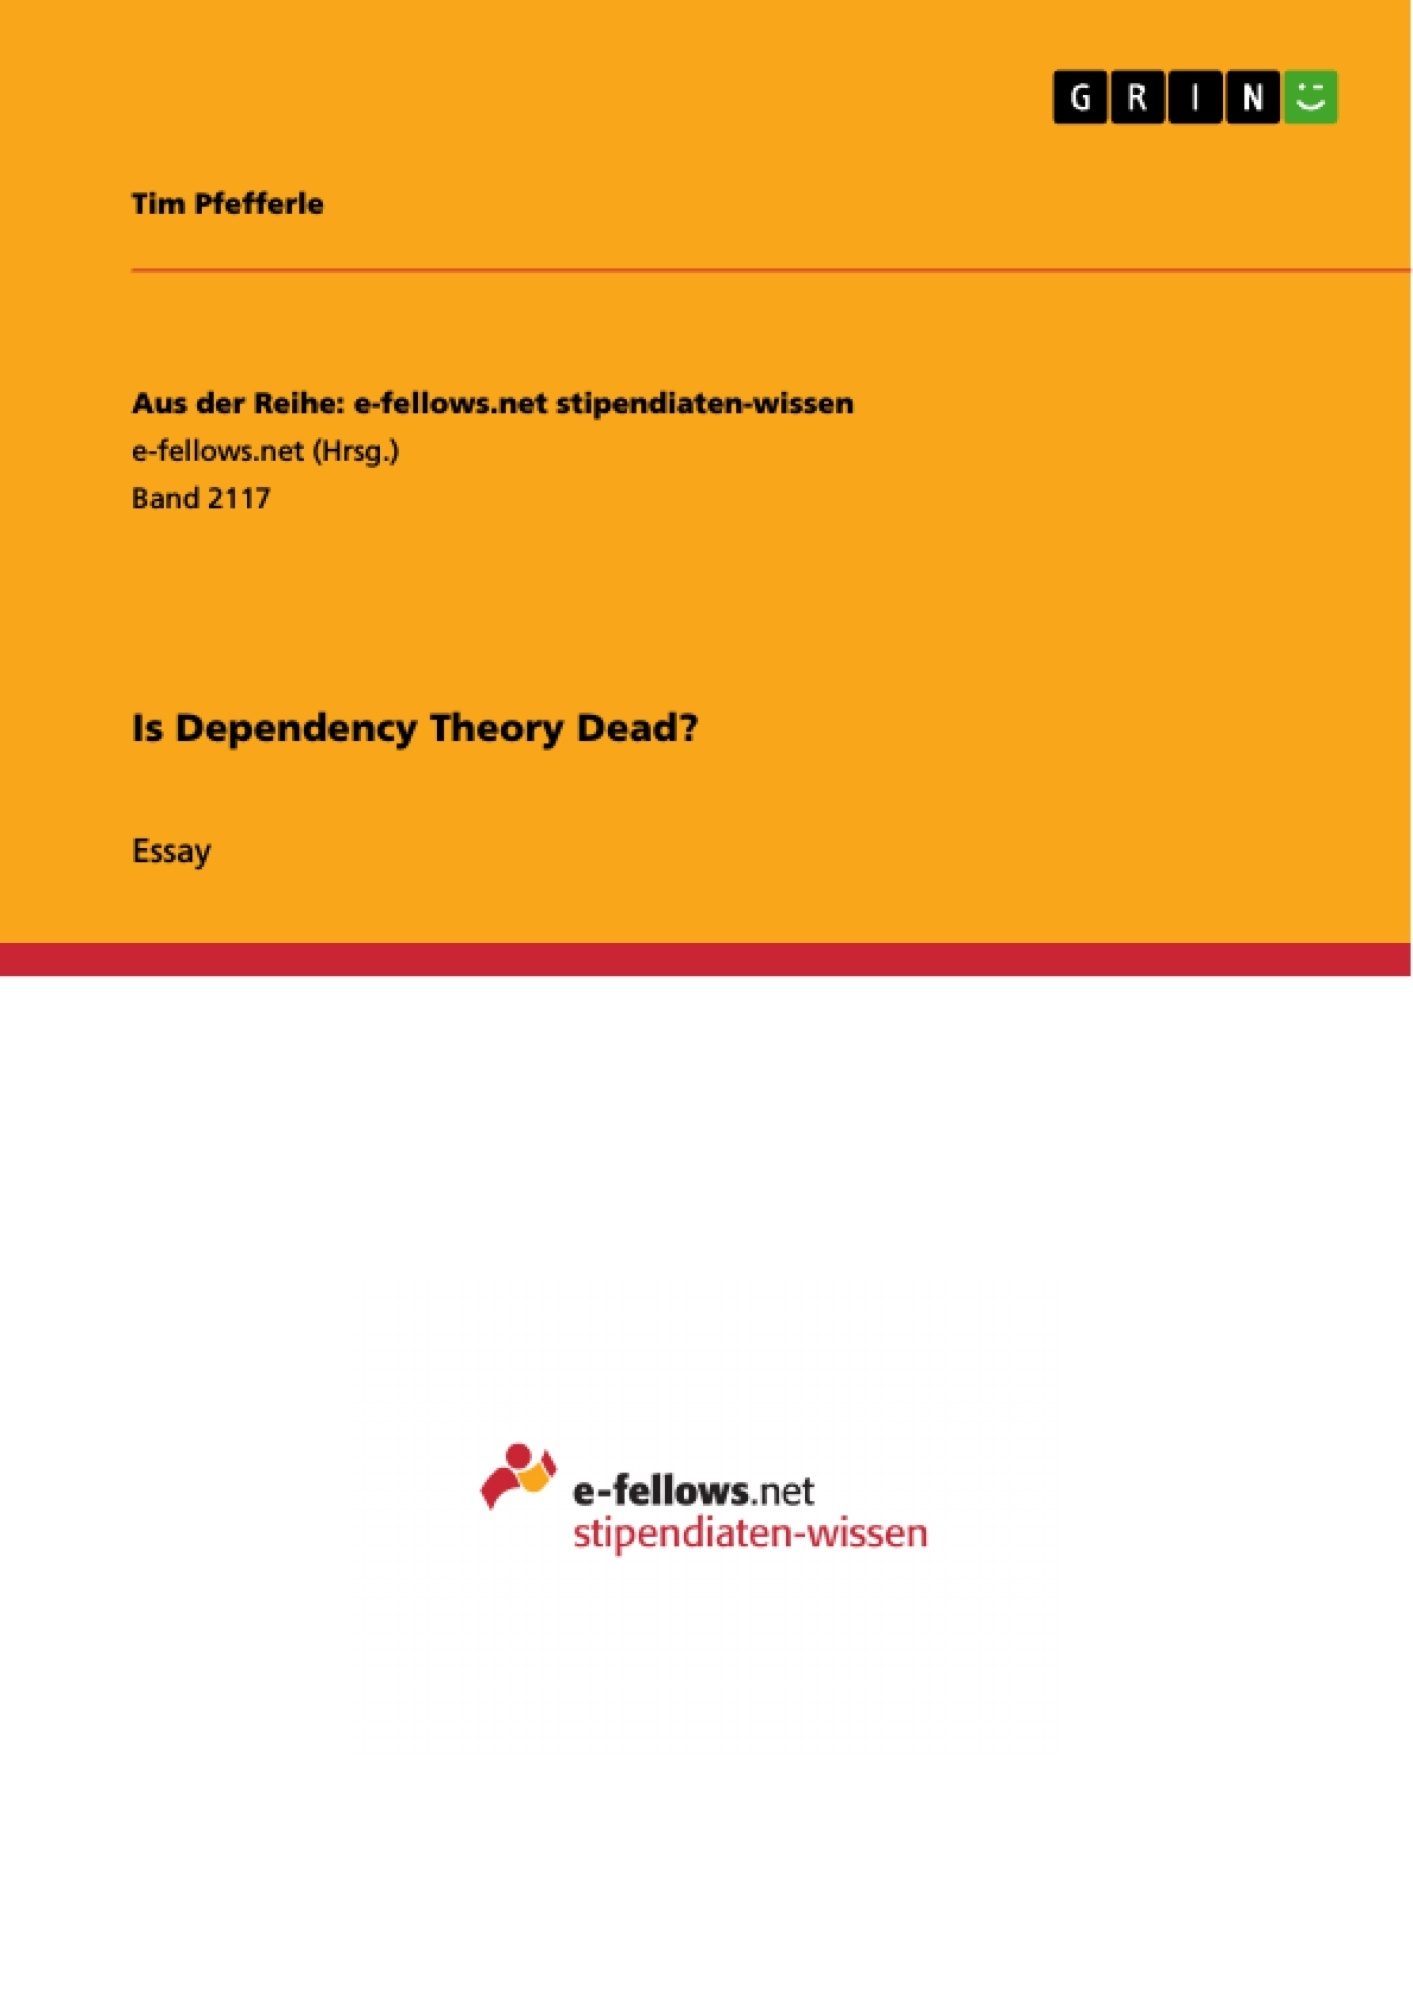 Title: Is Dependency Theory Dead?